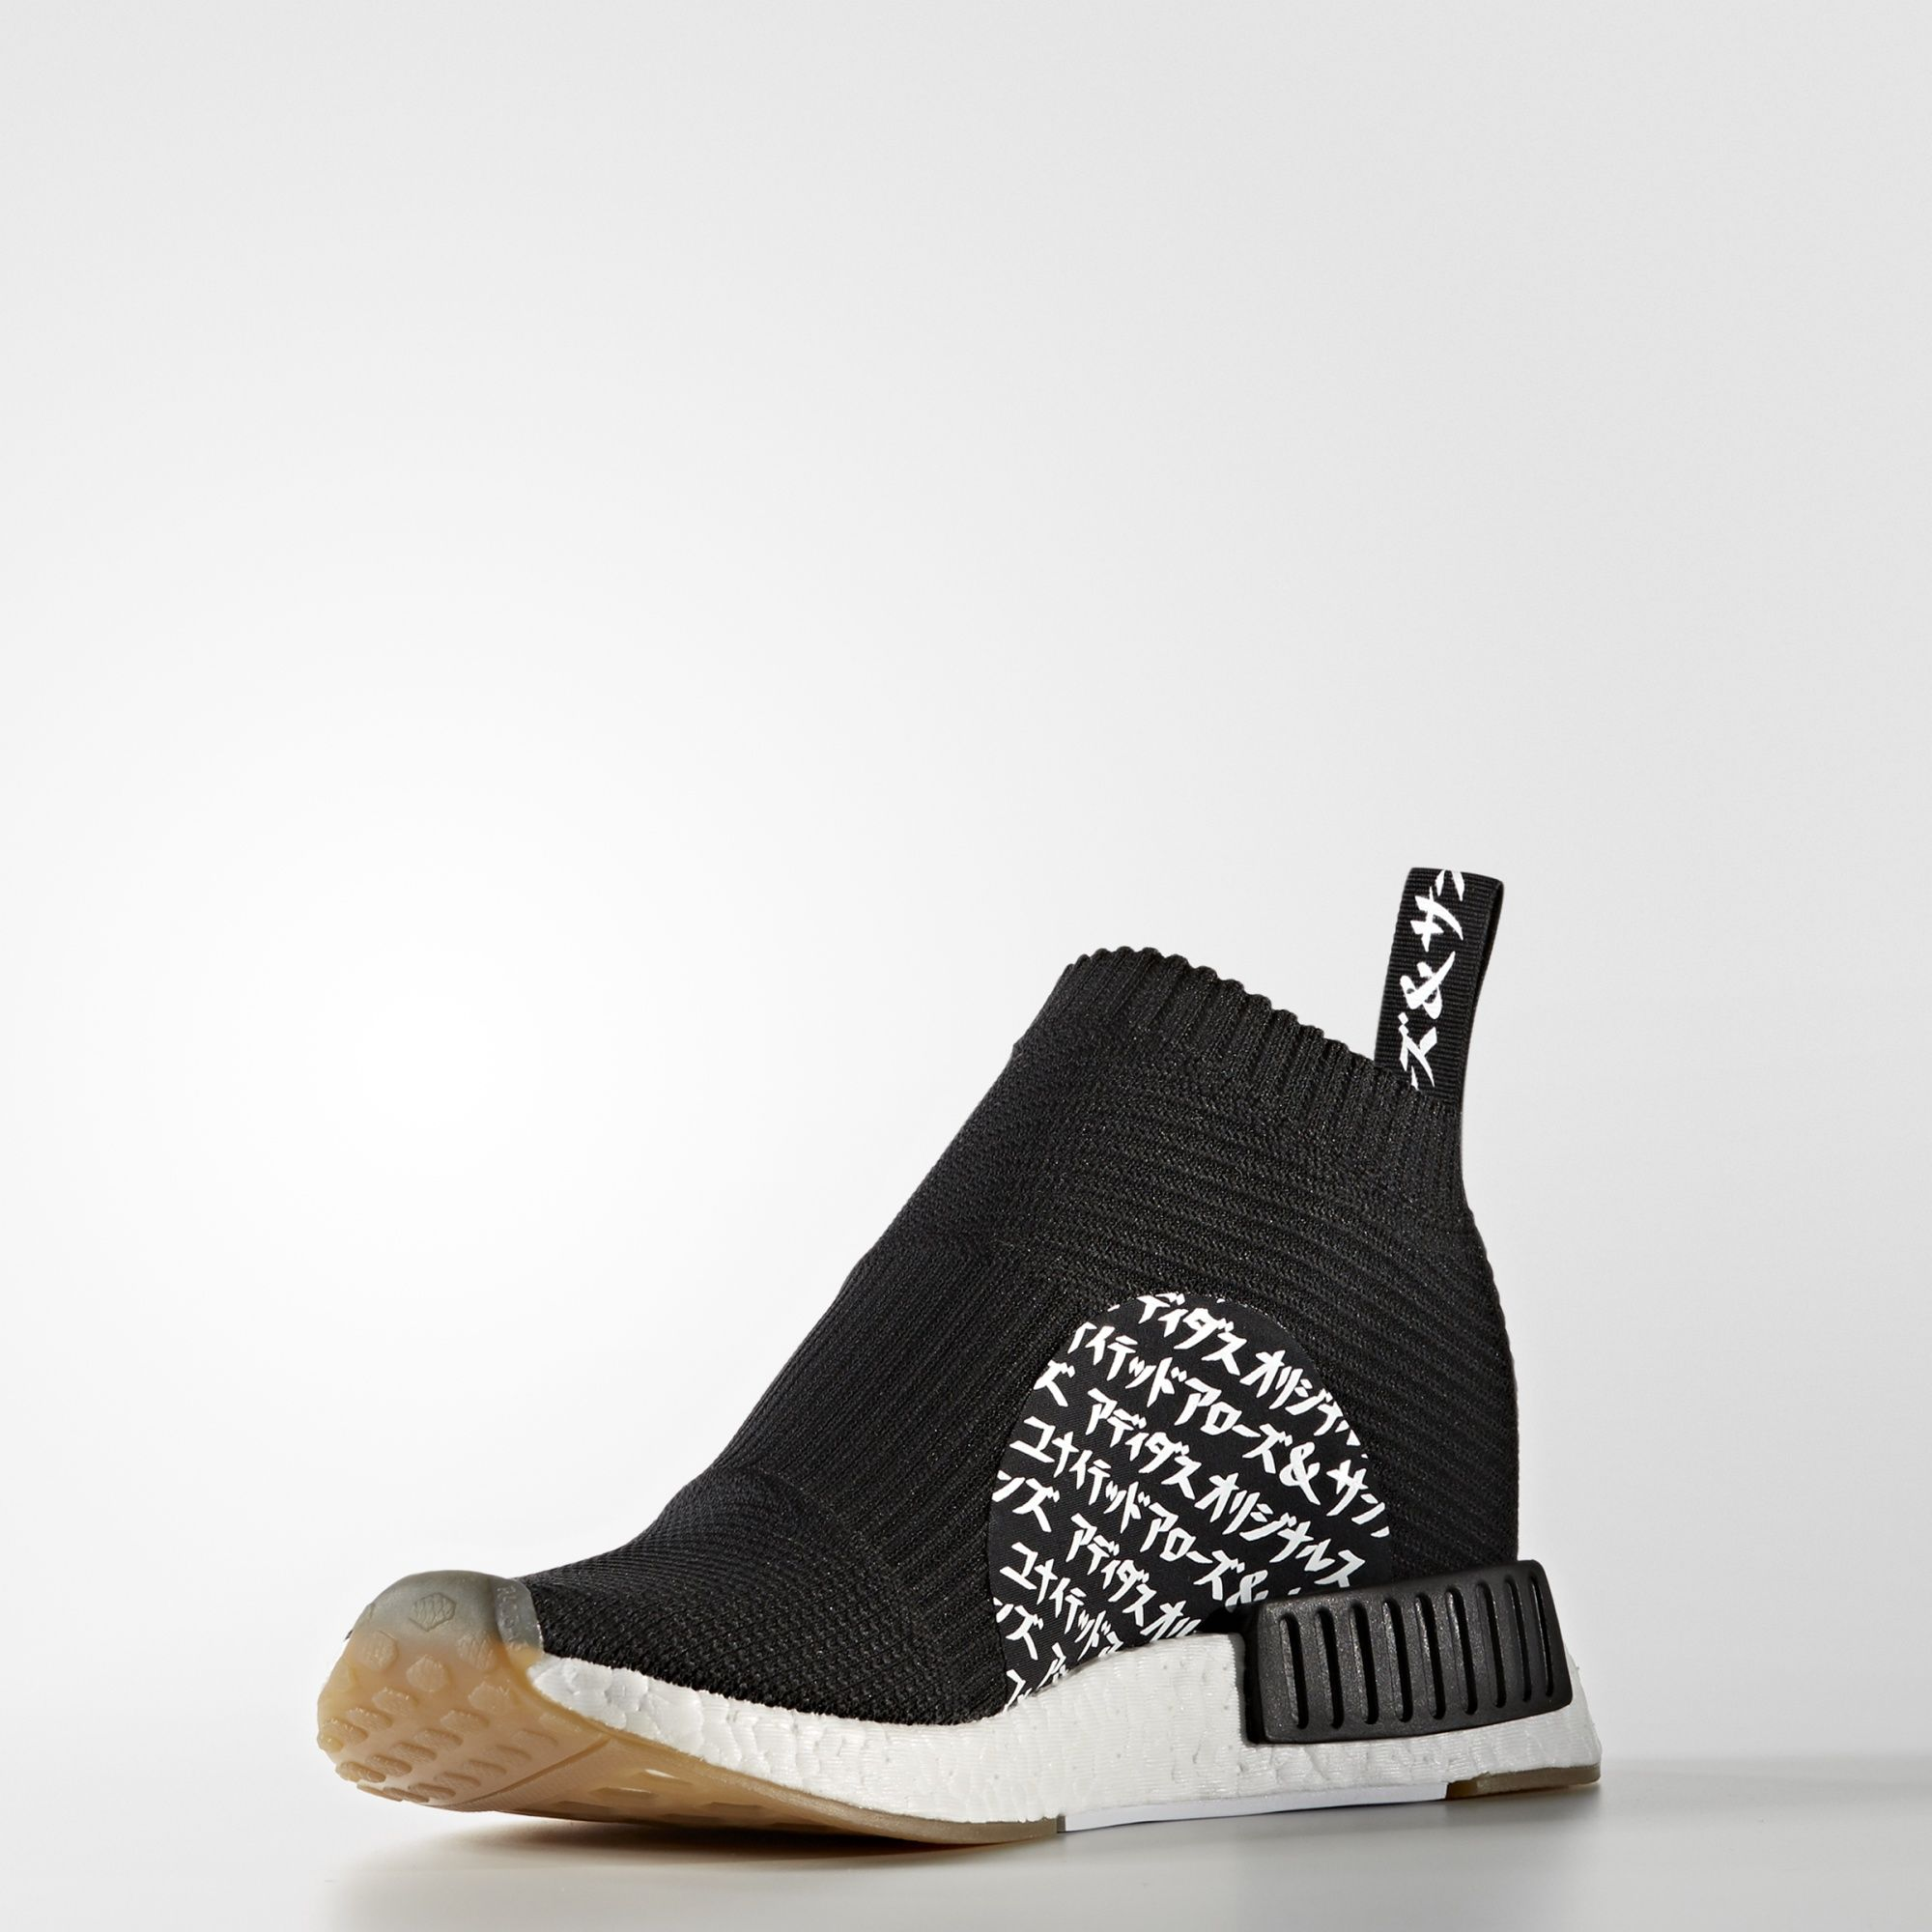 UASons x adidas NMD CS1 Black CG3604 3